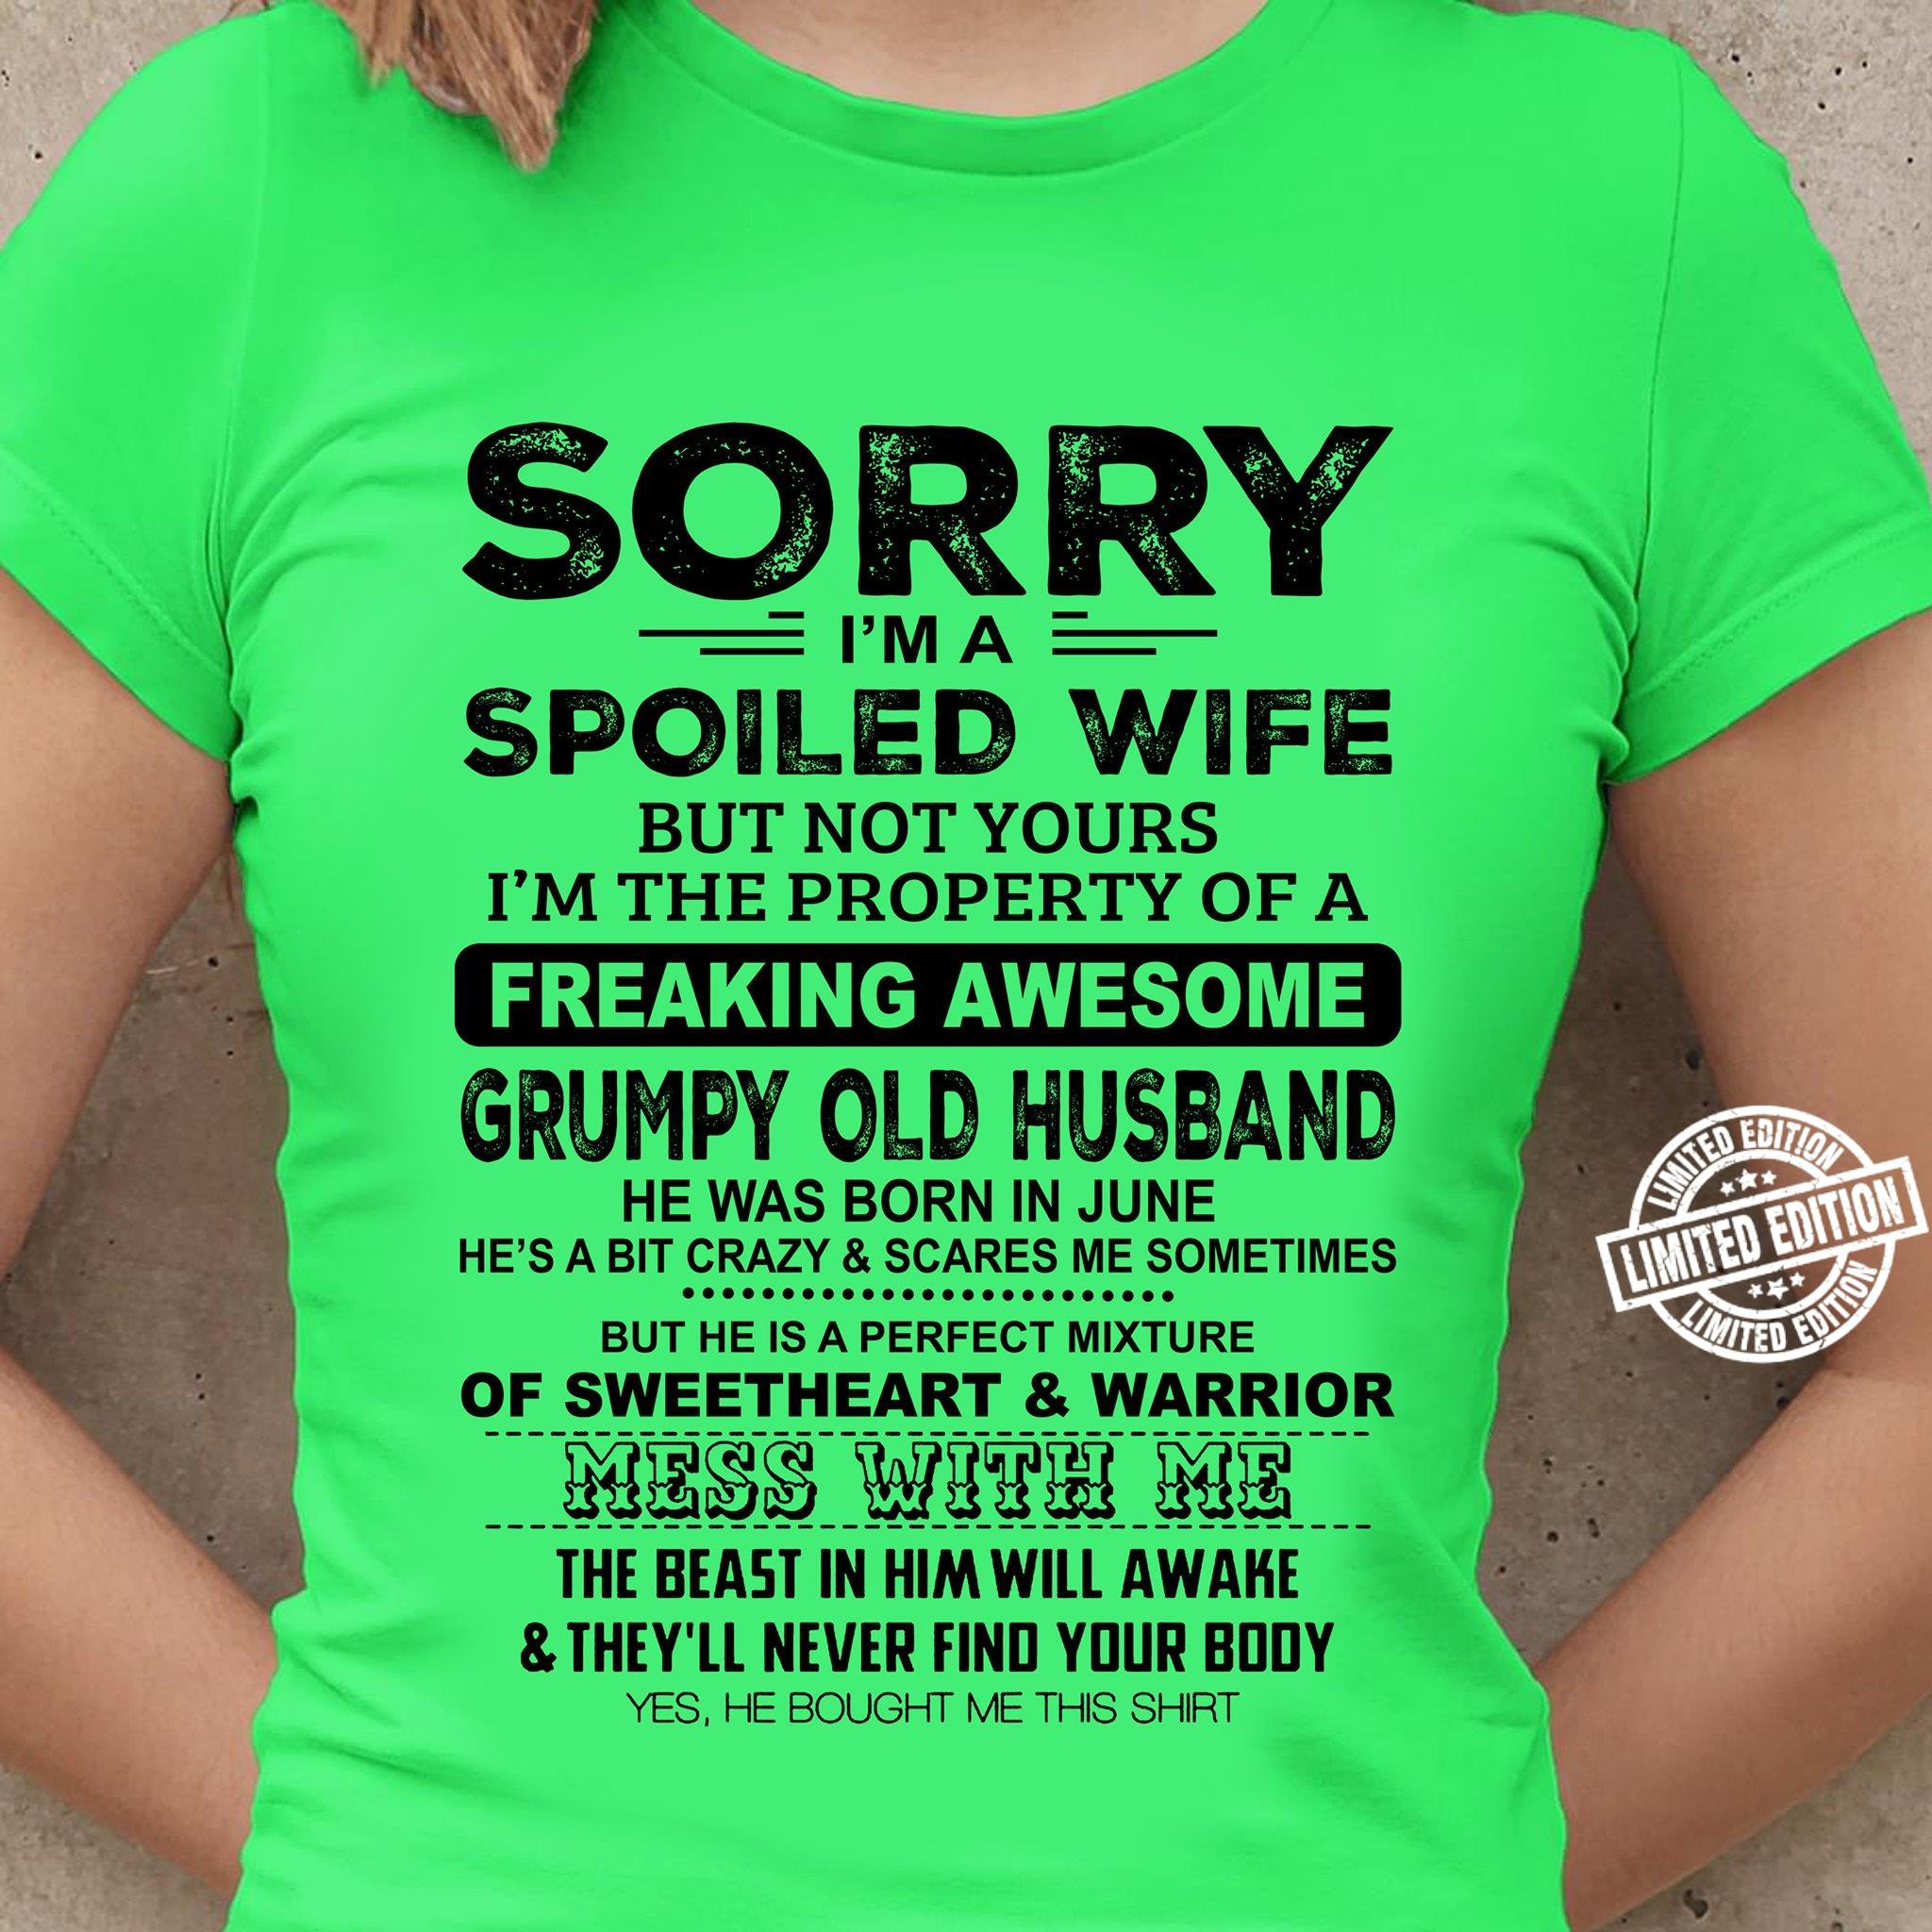 Sorry I'm a spoiled wife but not yours I'm the property of a freaking awesome grumpy old husband shirt